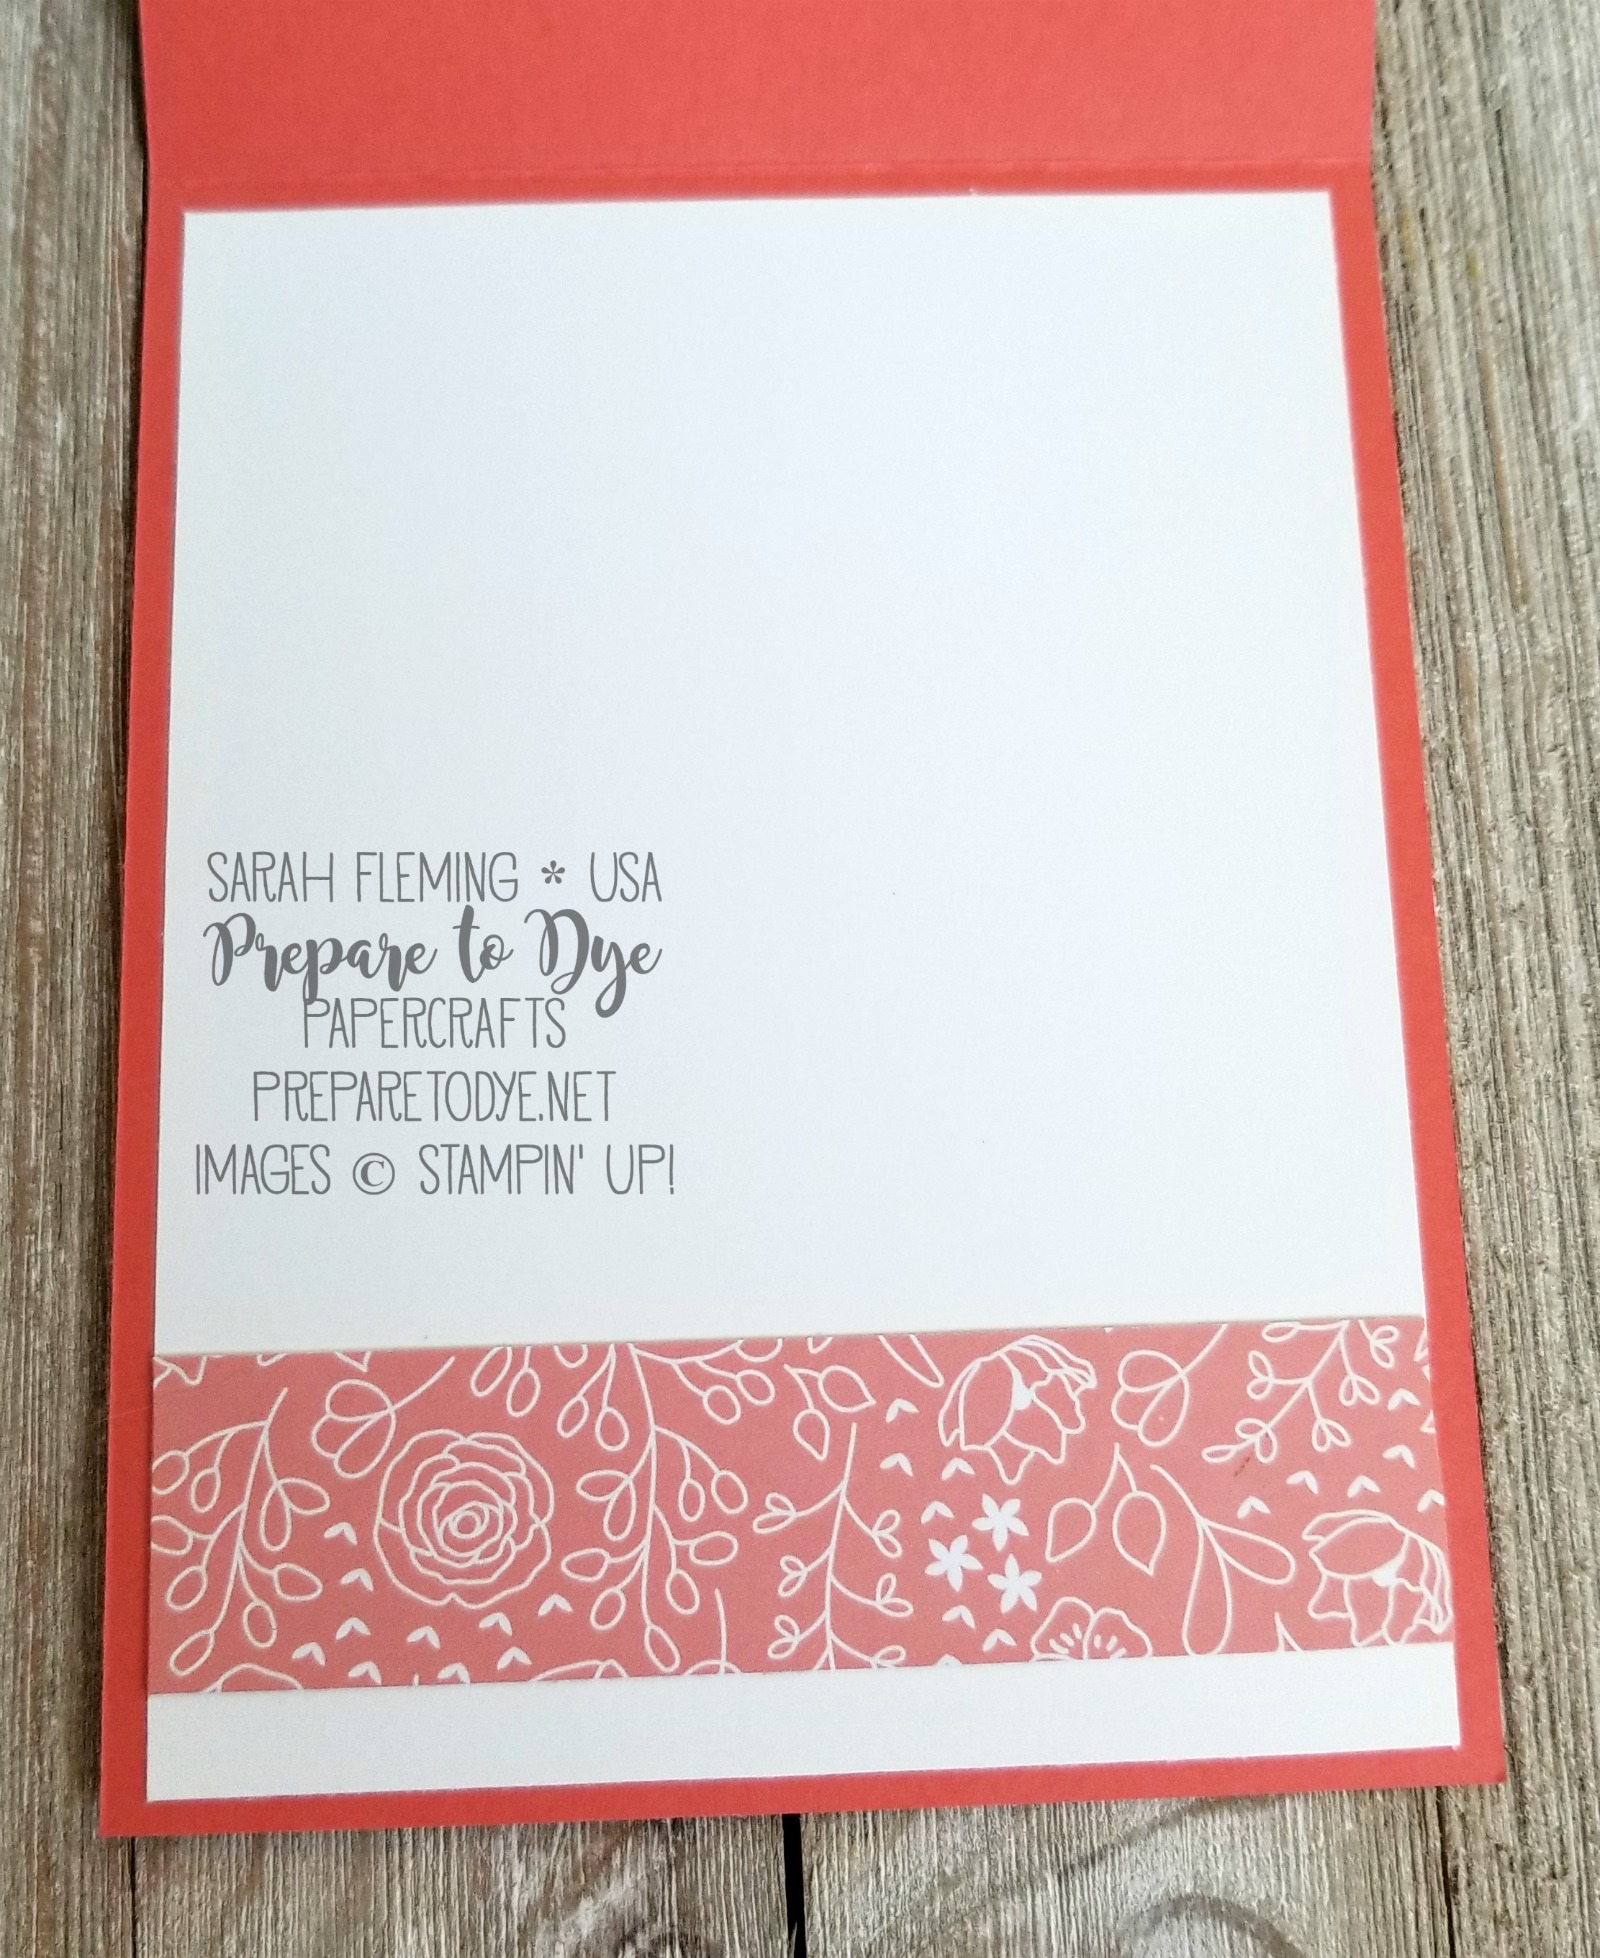 Stampin' Up! Sweet Soiree Memories & More Card Pack with Eastern Beauty stamps - Sarah Fleming - Prepare to Dye Papercrafts